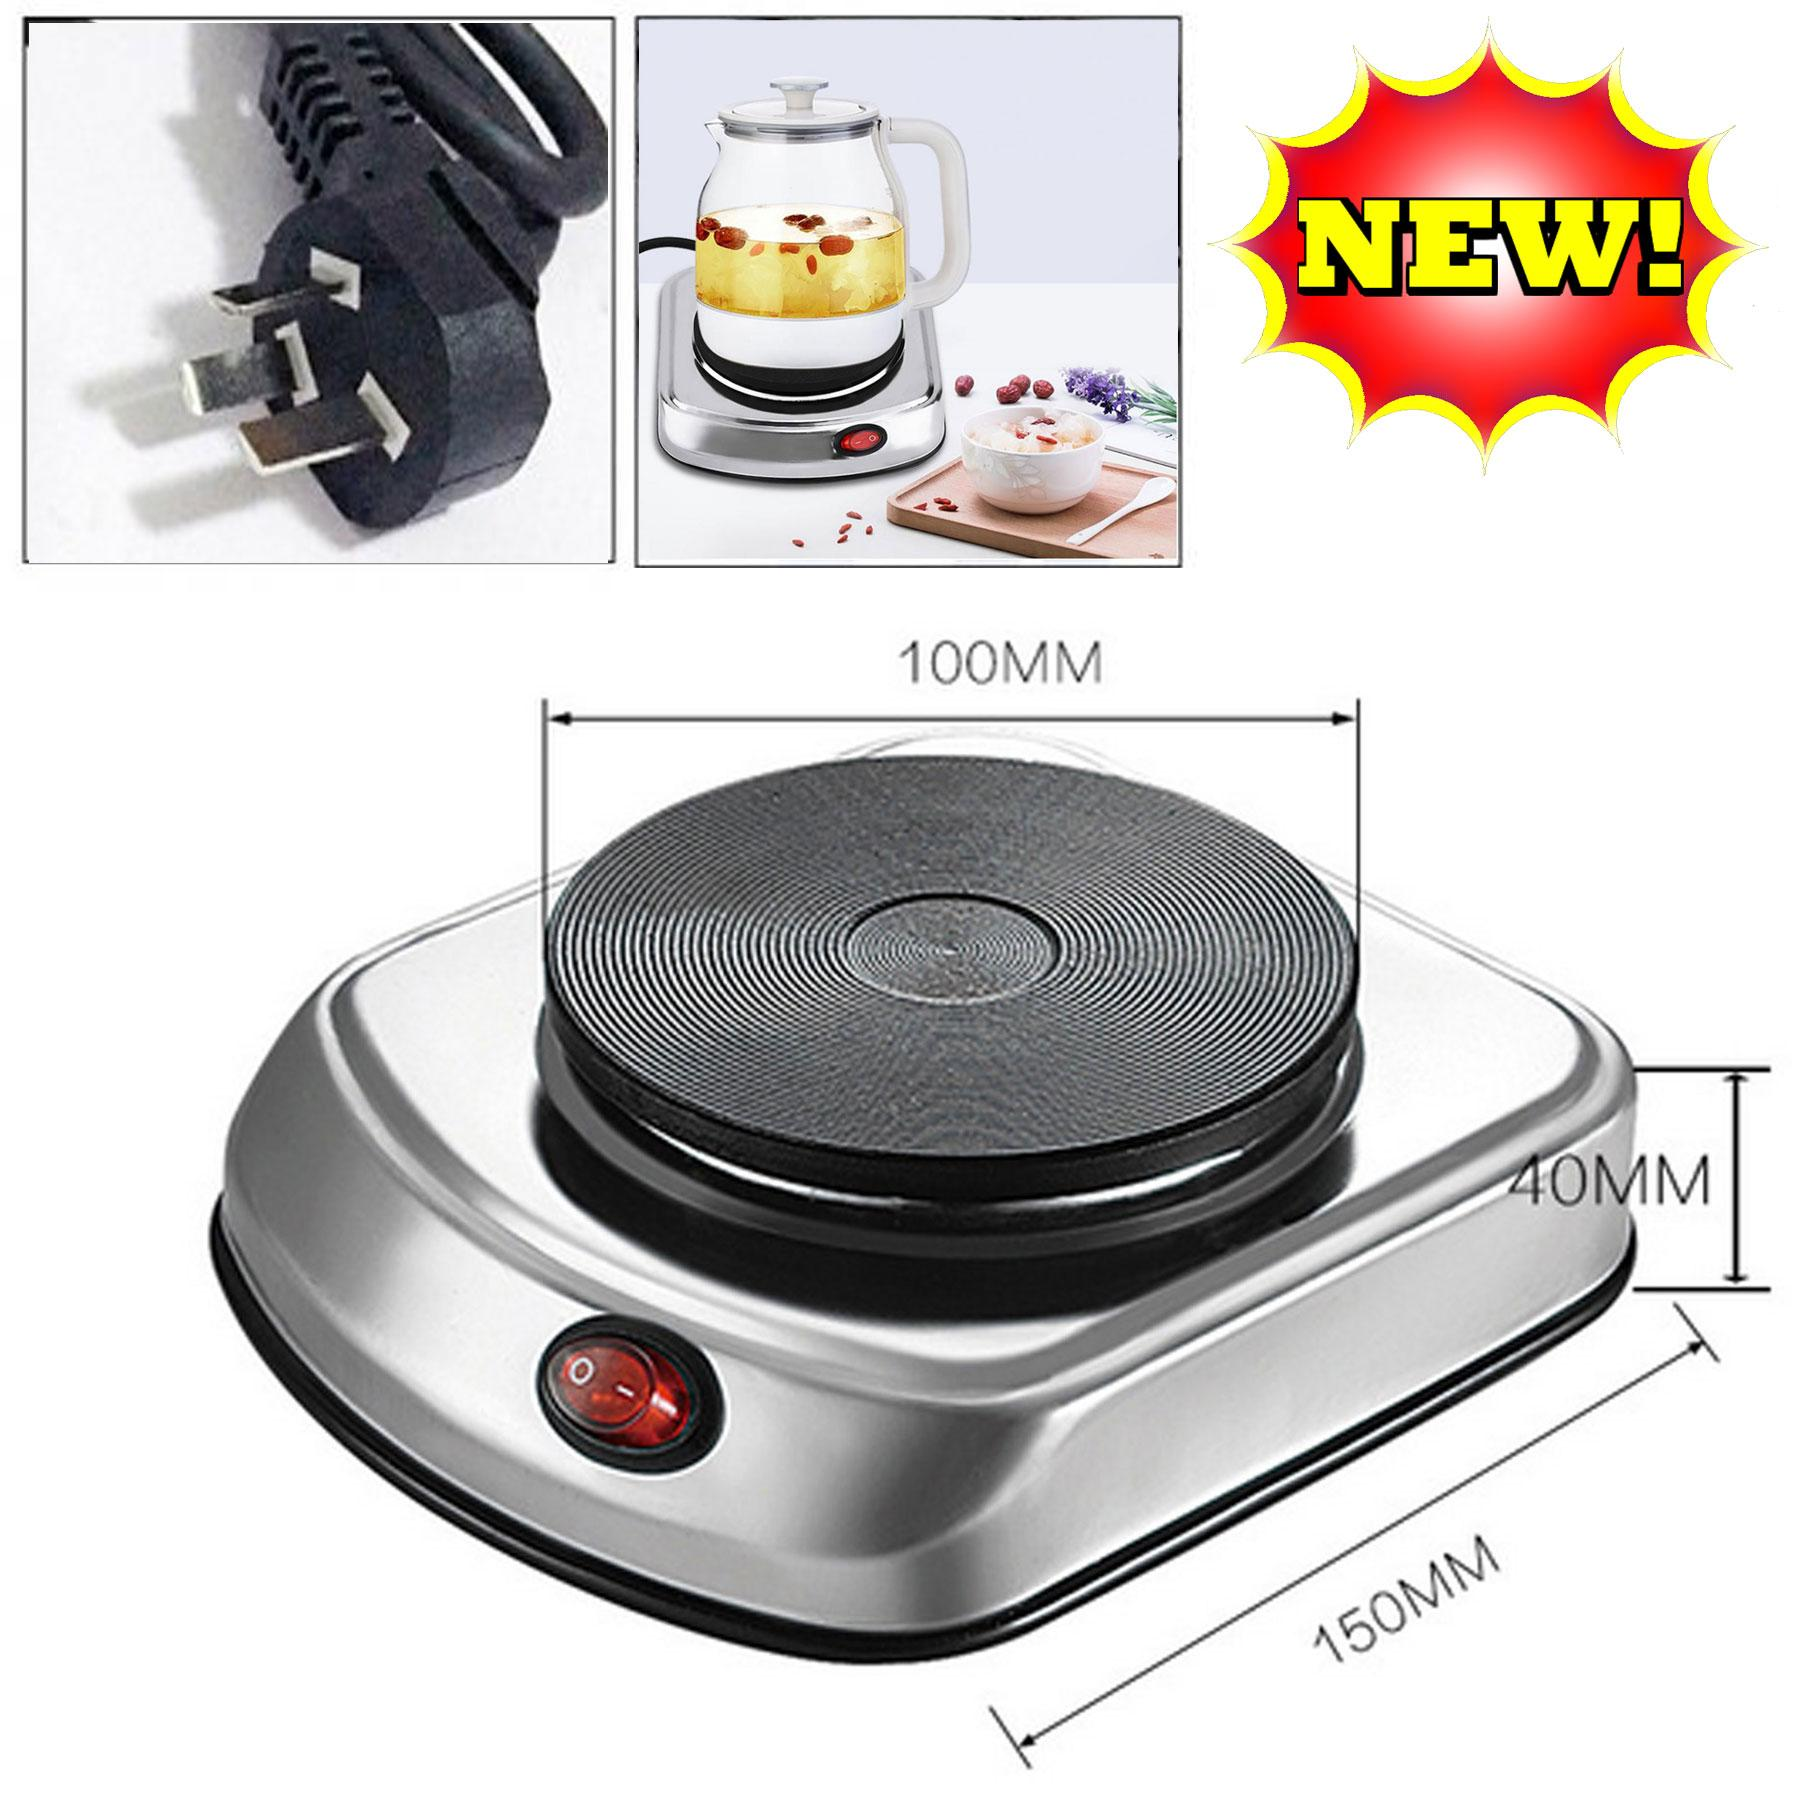 Buy Latest Small Kitchen Appliances At Best Price Online